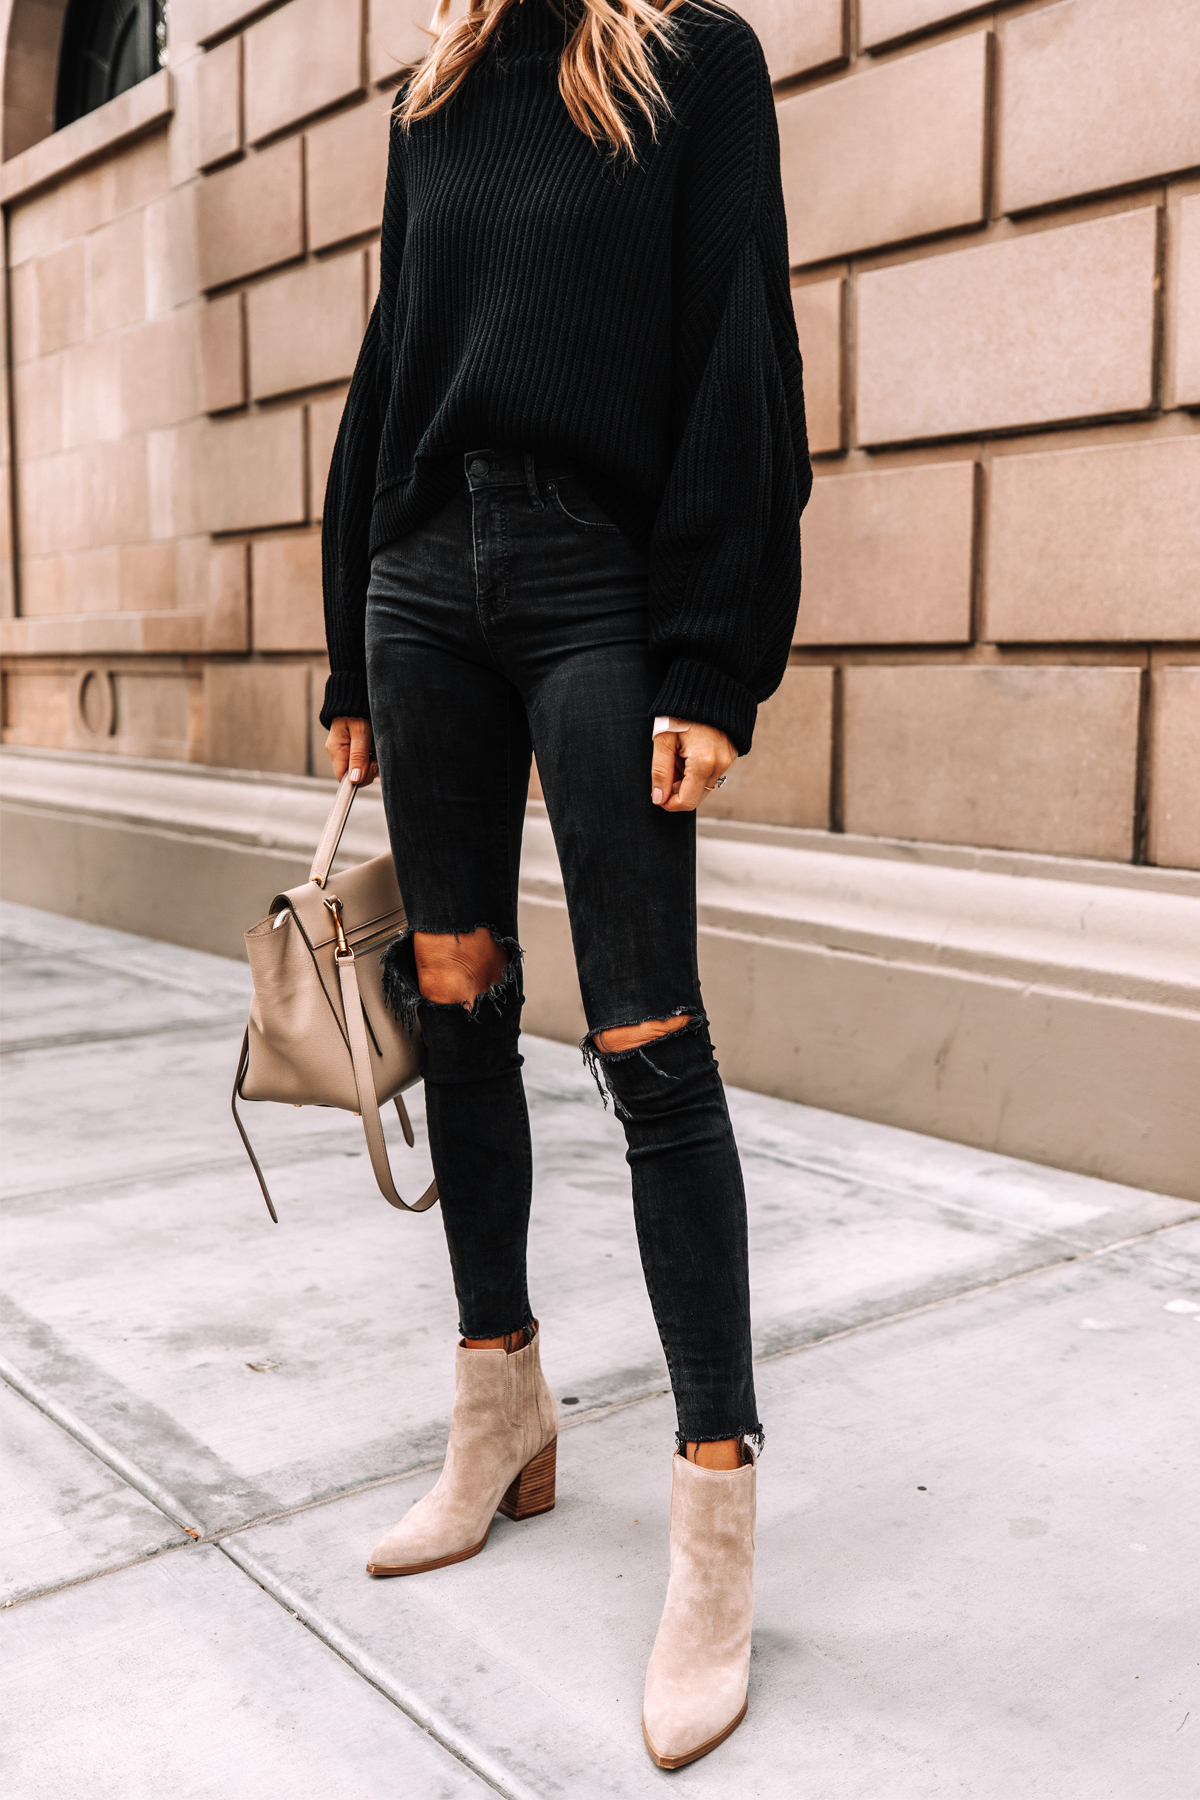 Fashion Jackson Wearing Free People Black Emmy Sweater Madewell Black Ripped Skinny Jeans Tan Suede Booties